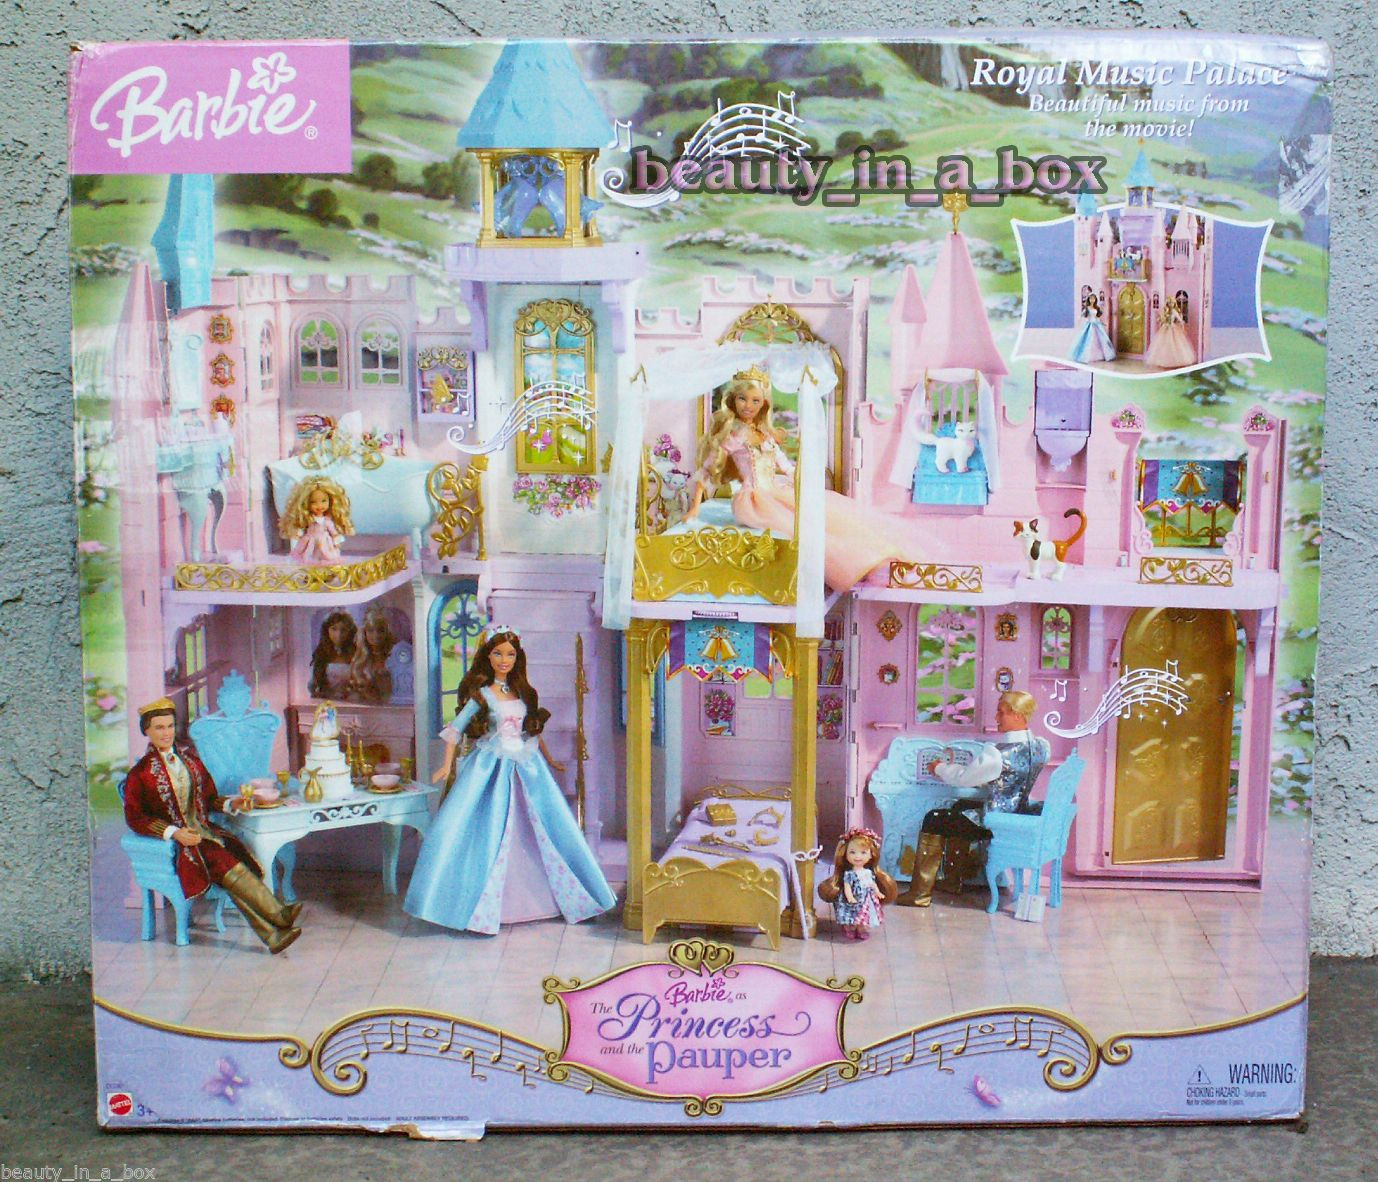 Castle For Sale At The Madison Club Avi Youtube - Details about royal music palace anneliese princess and the pauper barbie doll house castle